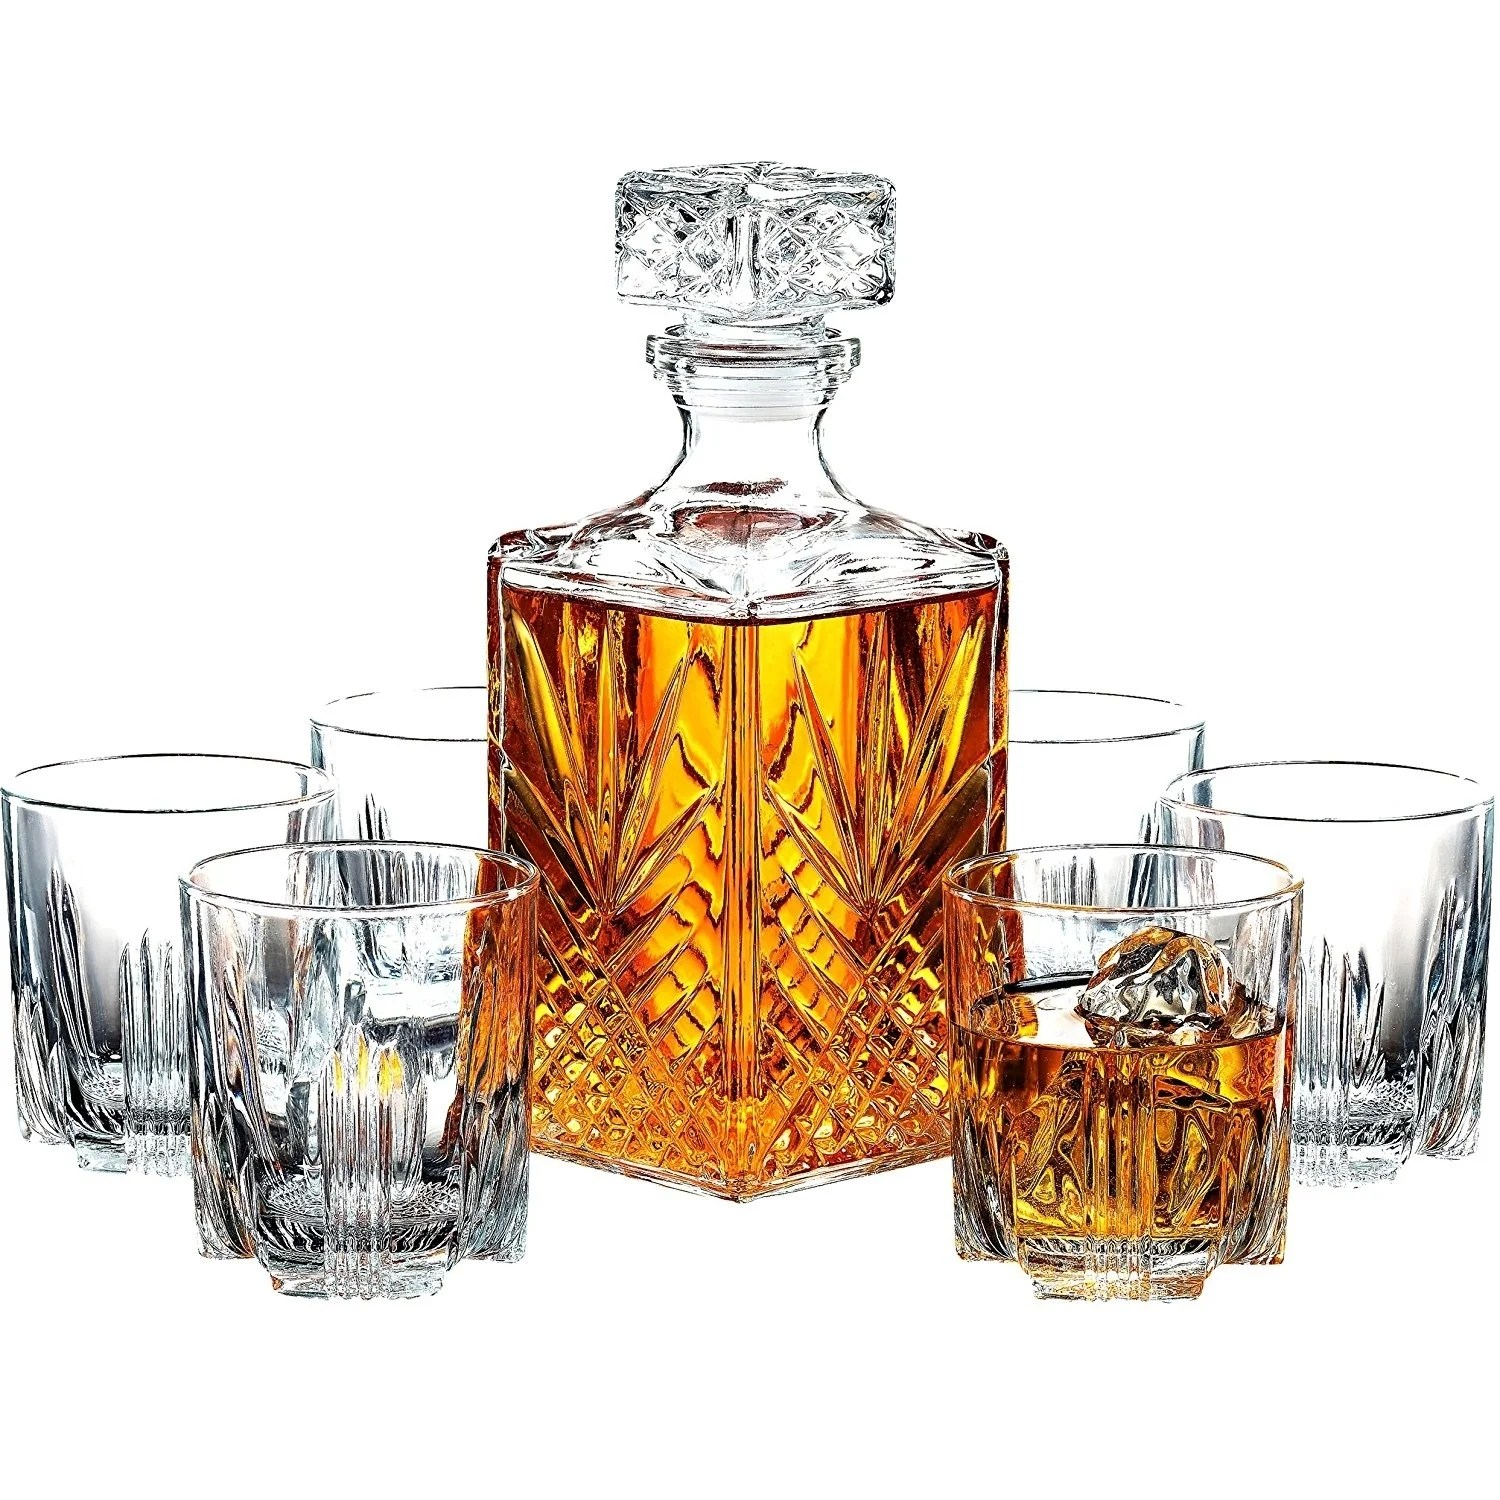 Wisky Glas 7 Piece Italian Crafted Glass Decanter Whisky Glasses Set Elegant Decanter With Ornate Stopper And 6 Exquisite Glasses